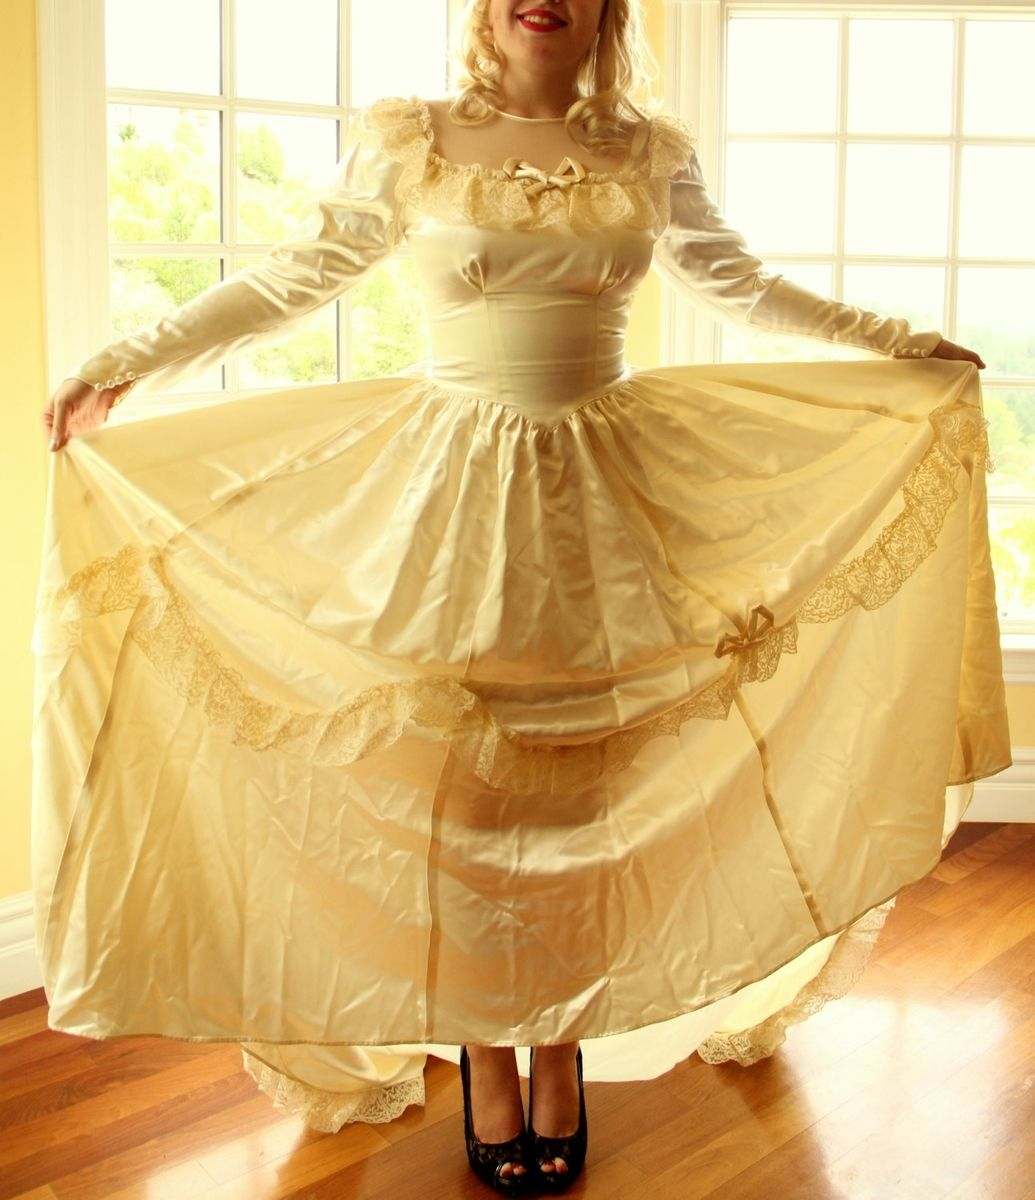 hand made vintage 40s wedding dress in silk satin and chantilly lace with satin rope bow accents